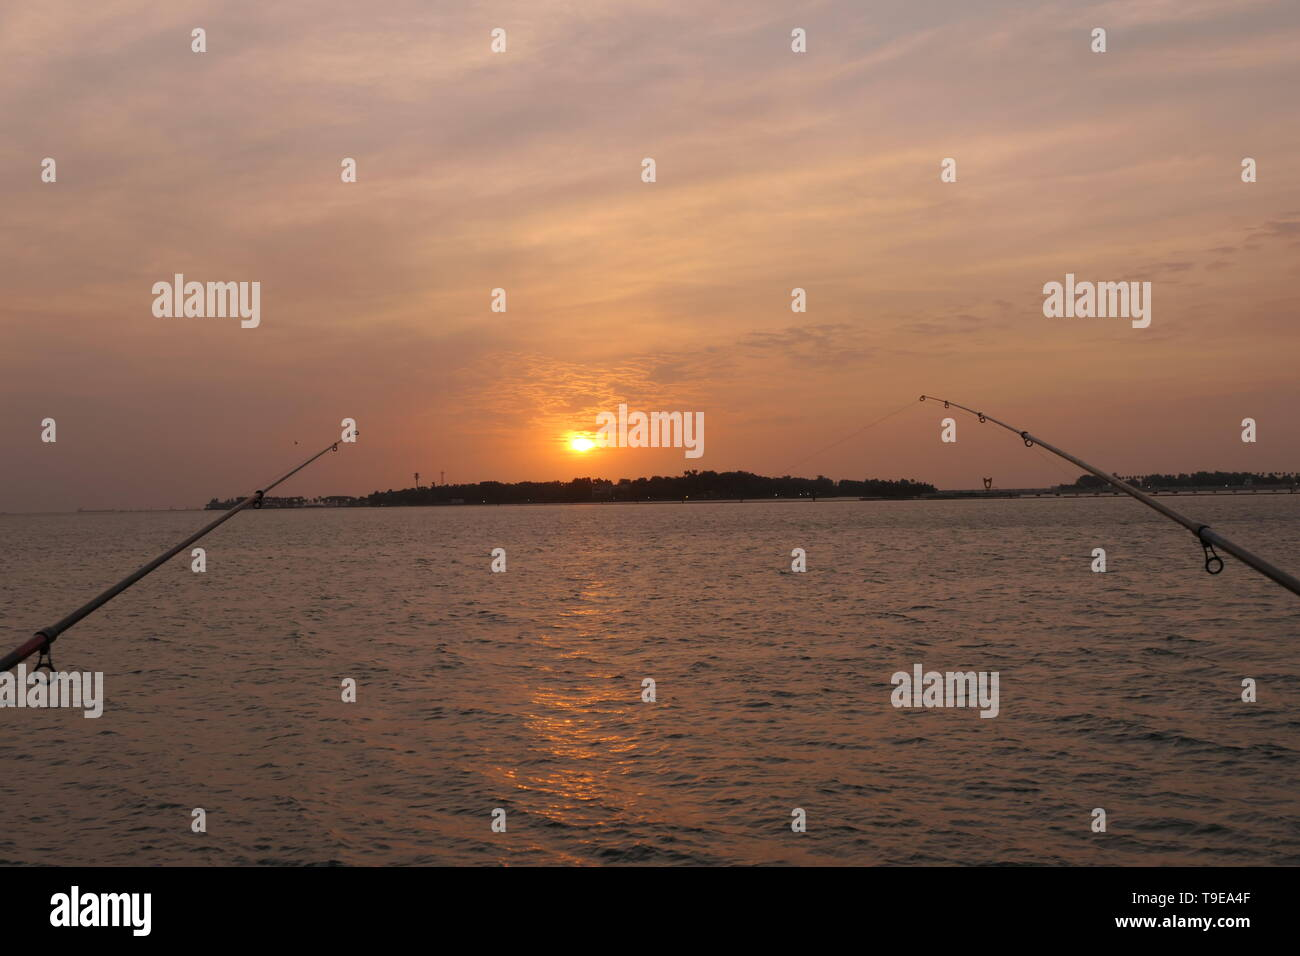 Natural and beautiful sunset with clear clouds and fishing rods in the background, at the coast of Jeddah, Saudi Arabia - Stock Image